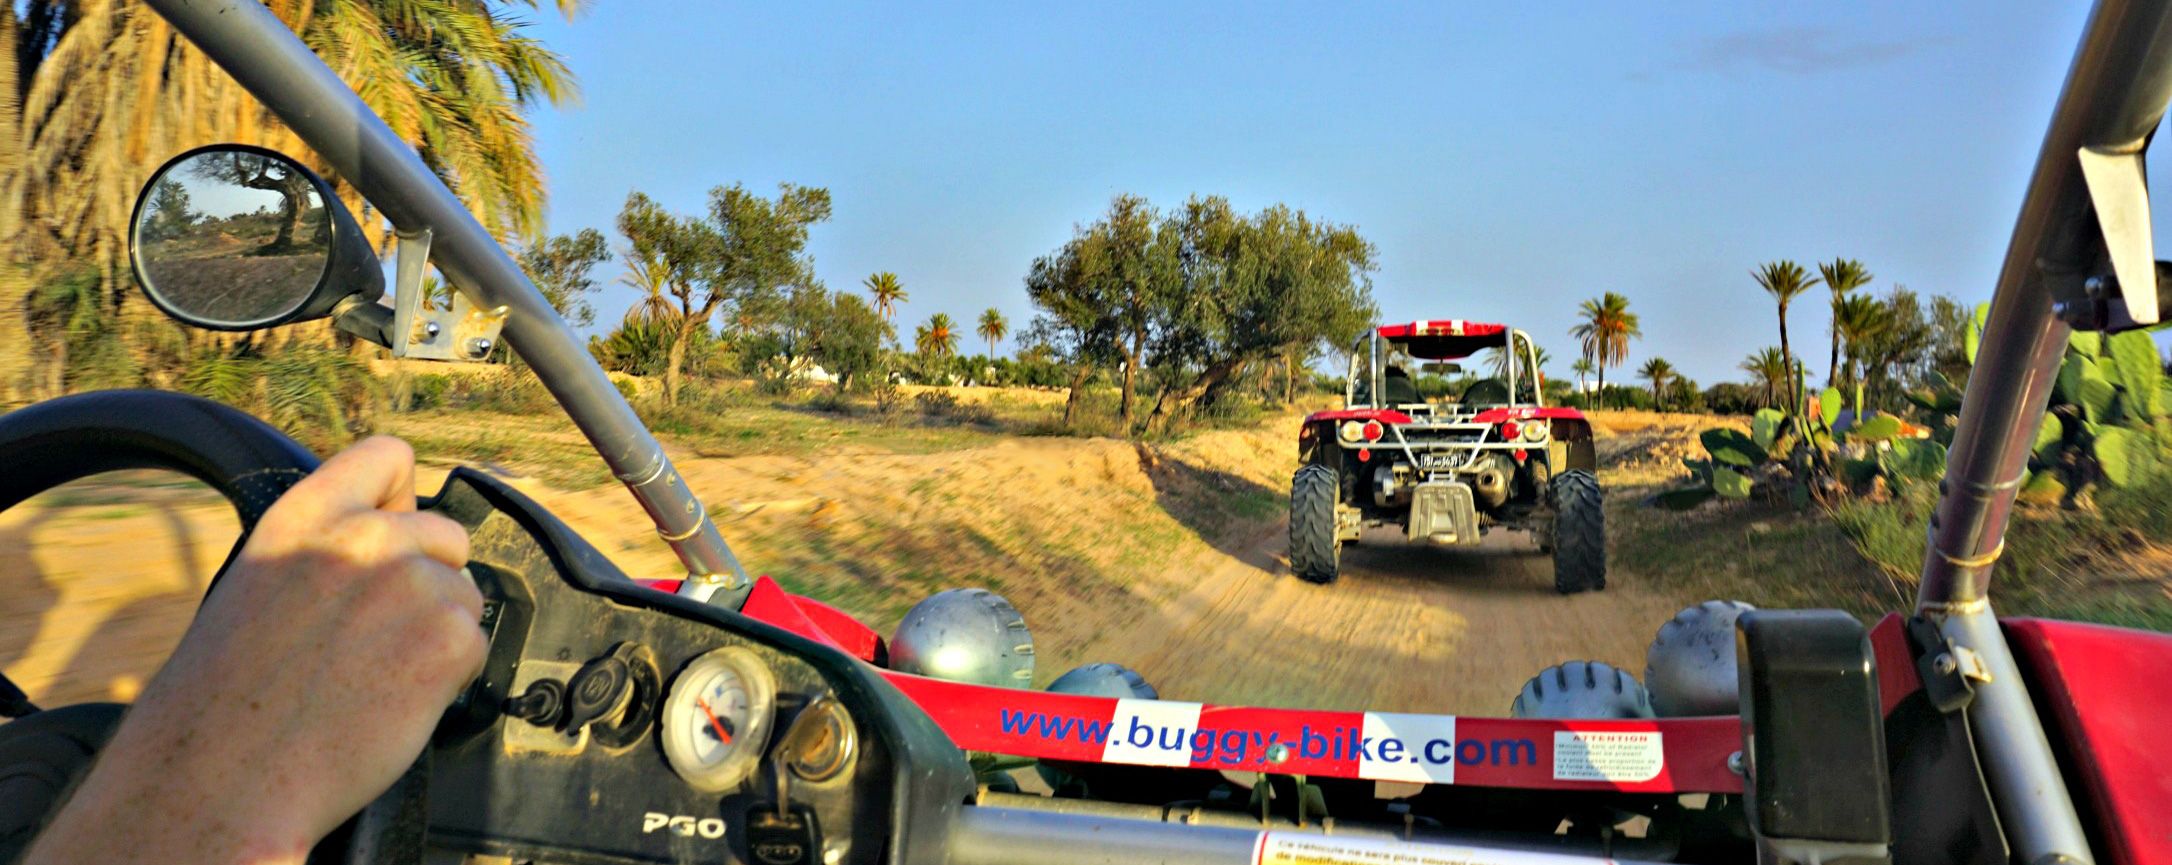 dune buggy tour on djerba